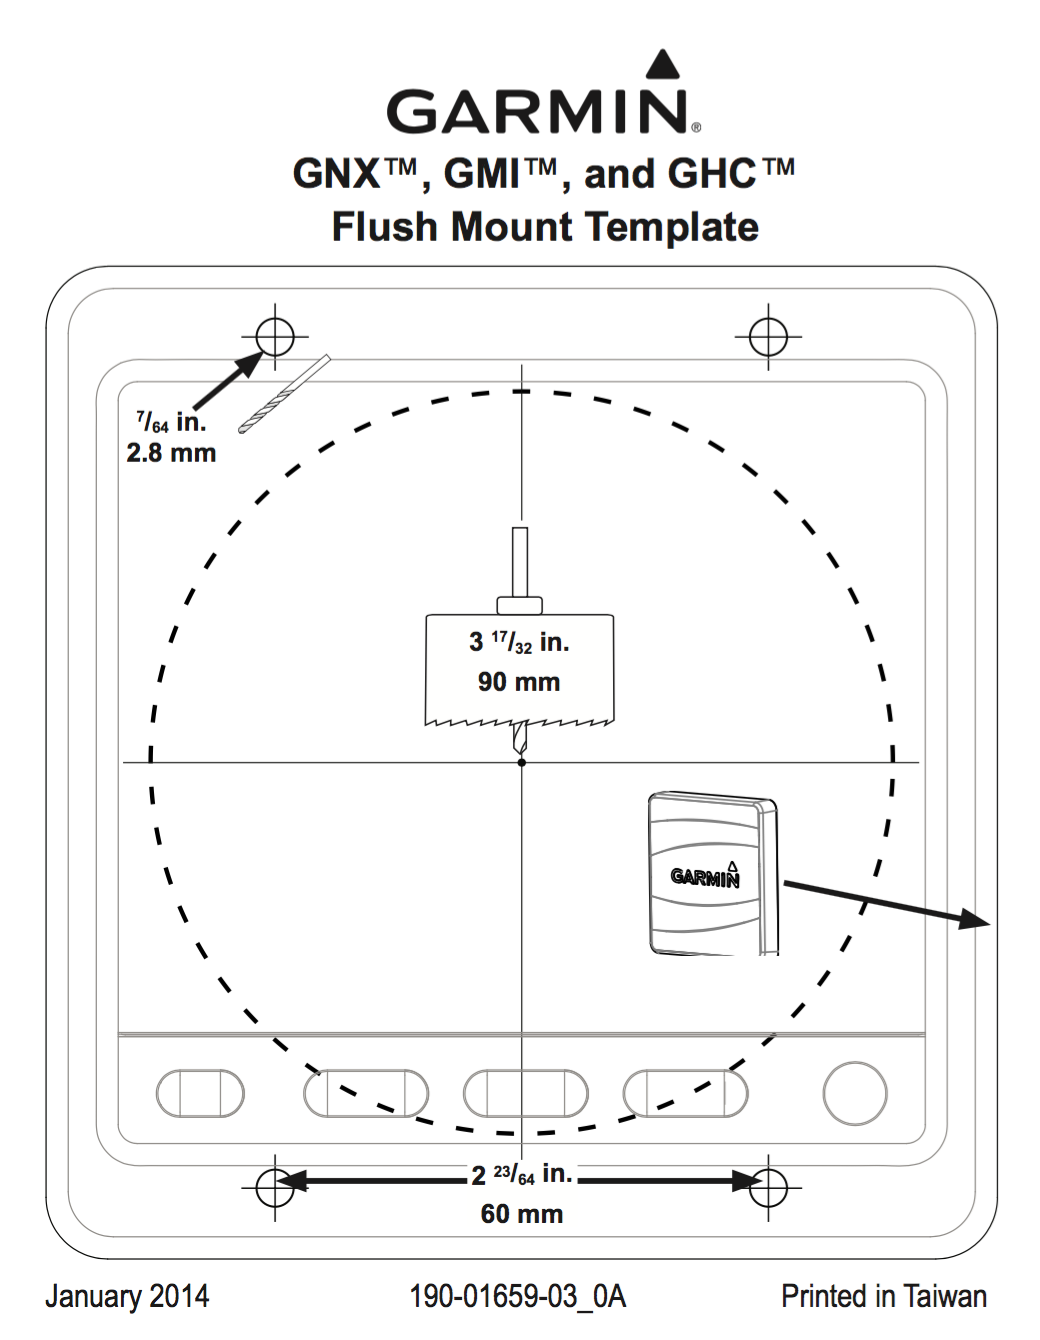 gnx gmi ghc flush mount template